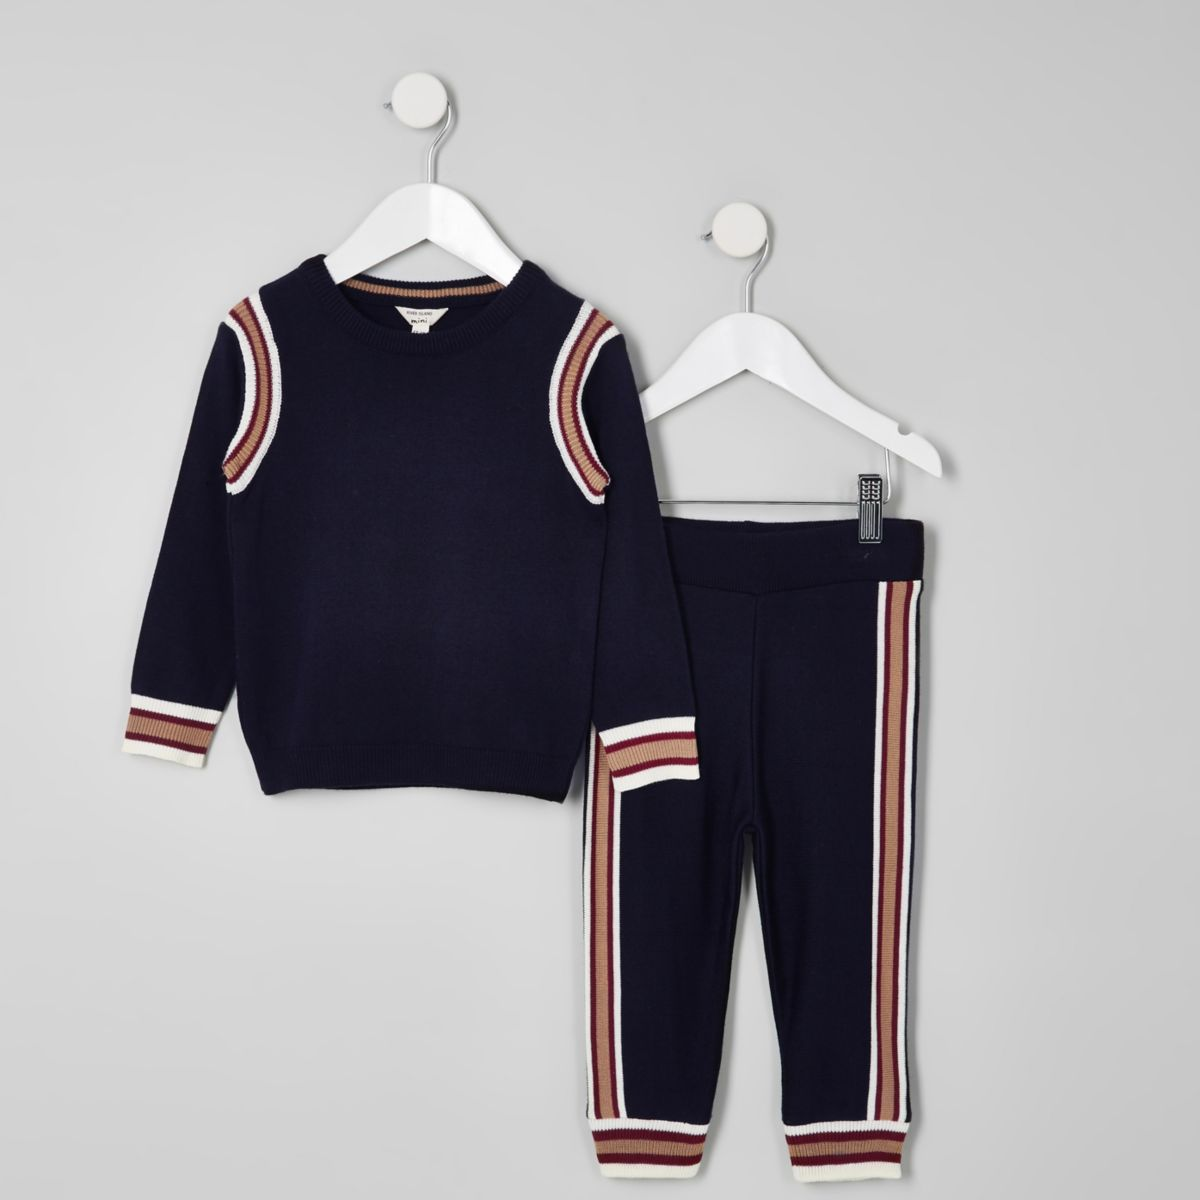 Mini boys navy sweater and joggers outfit